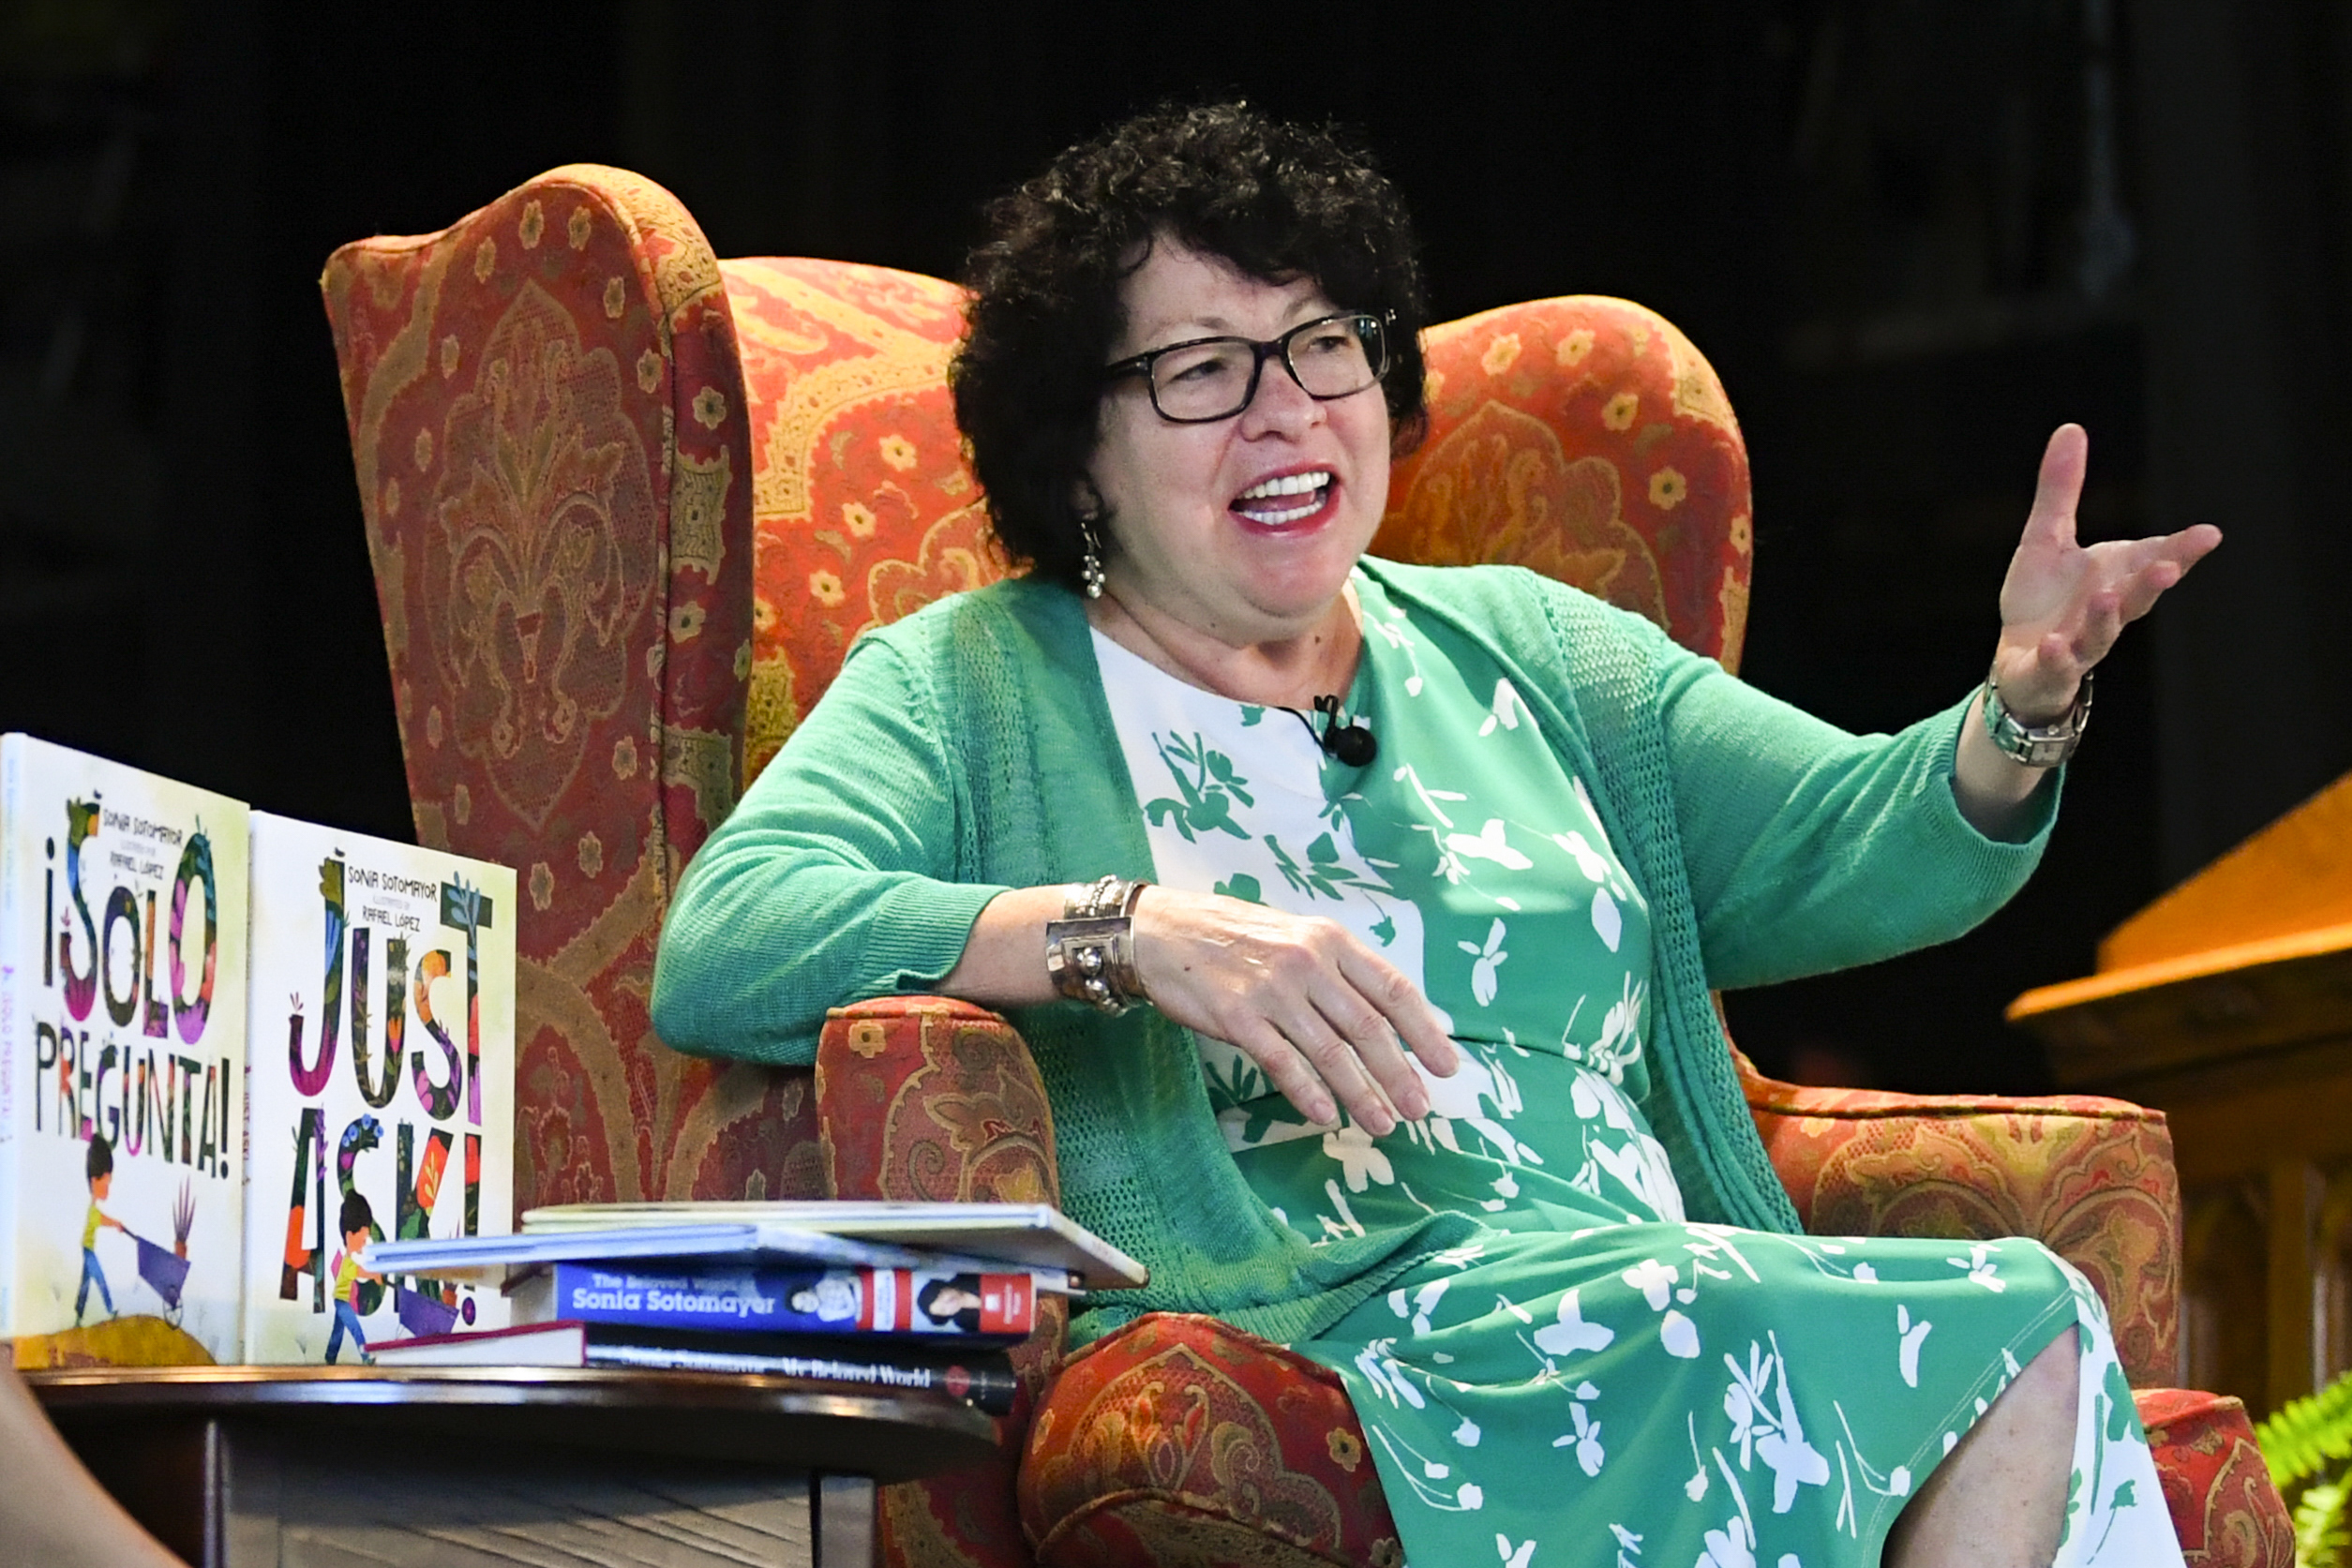 """U.S. Supreme Court Justice Sonia Sotomayor addresses attendees of an event on Sunday promoting her new children's book """"Just Ask!"""" in Decatur, Georgia."""